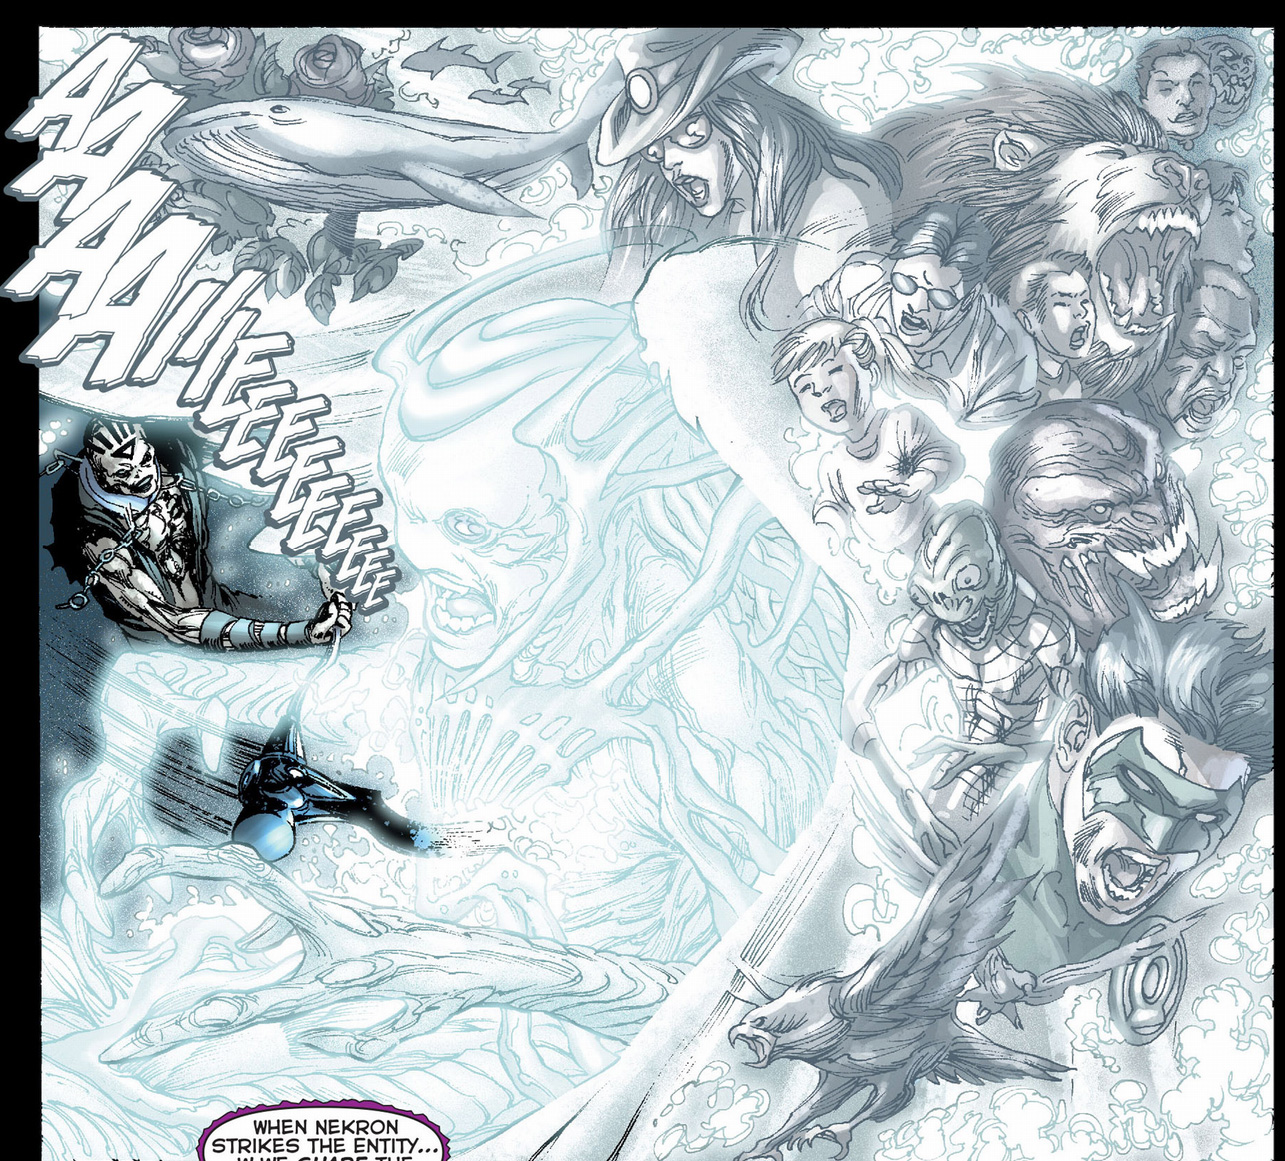 nekron attacks the white entity